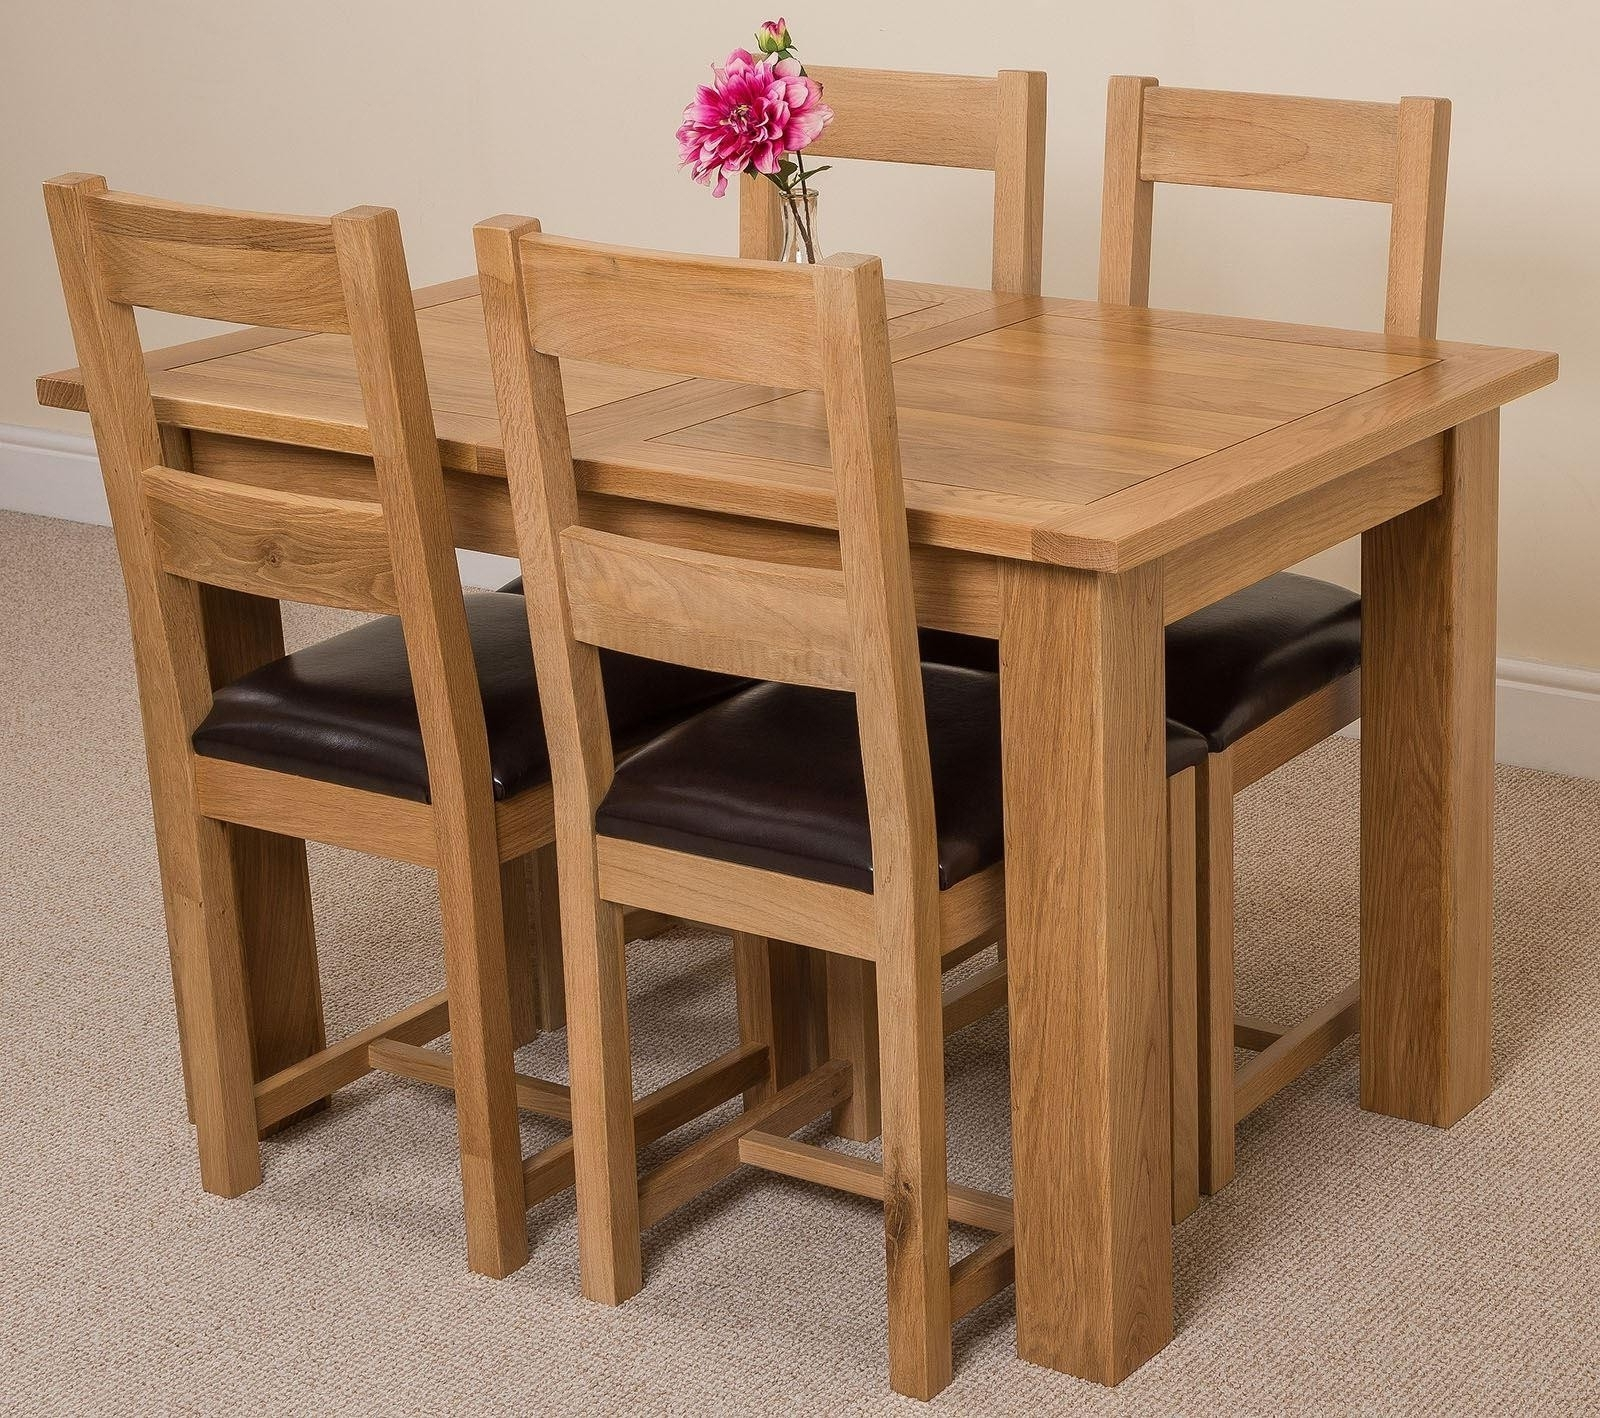 Oak Furniture King With Best And Newest Oak Dining Tables And 4 Chairs (View 13 of 25)